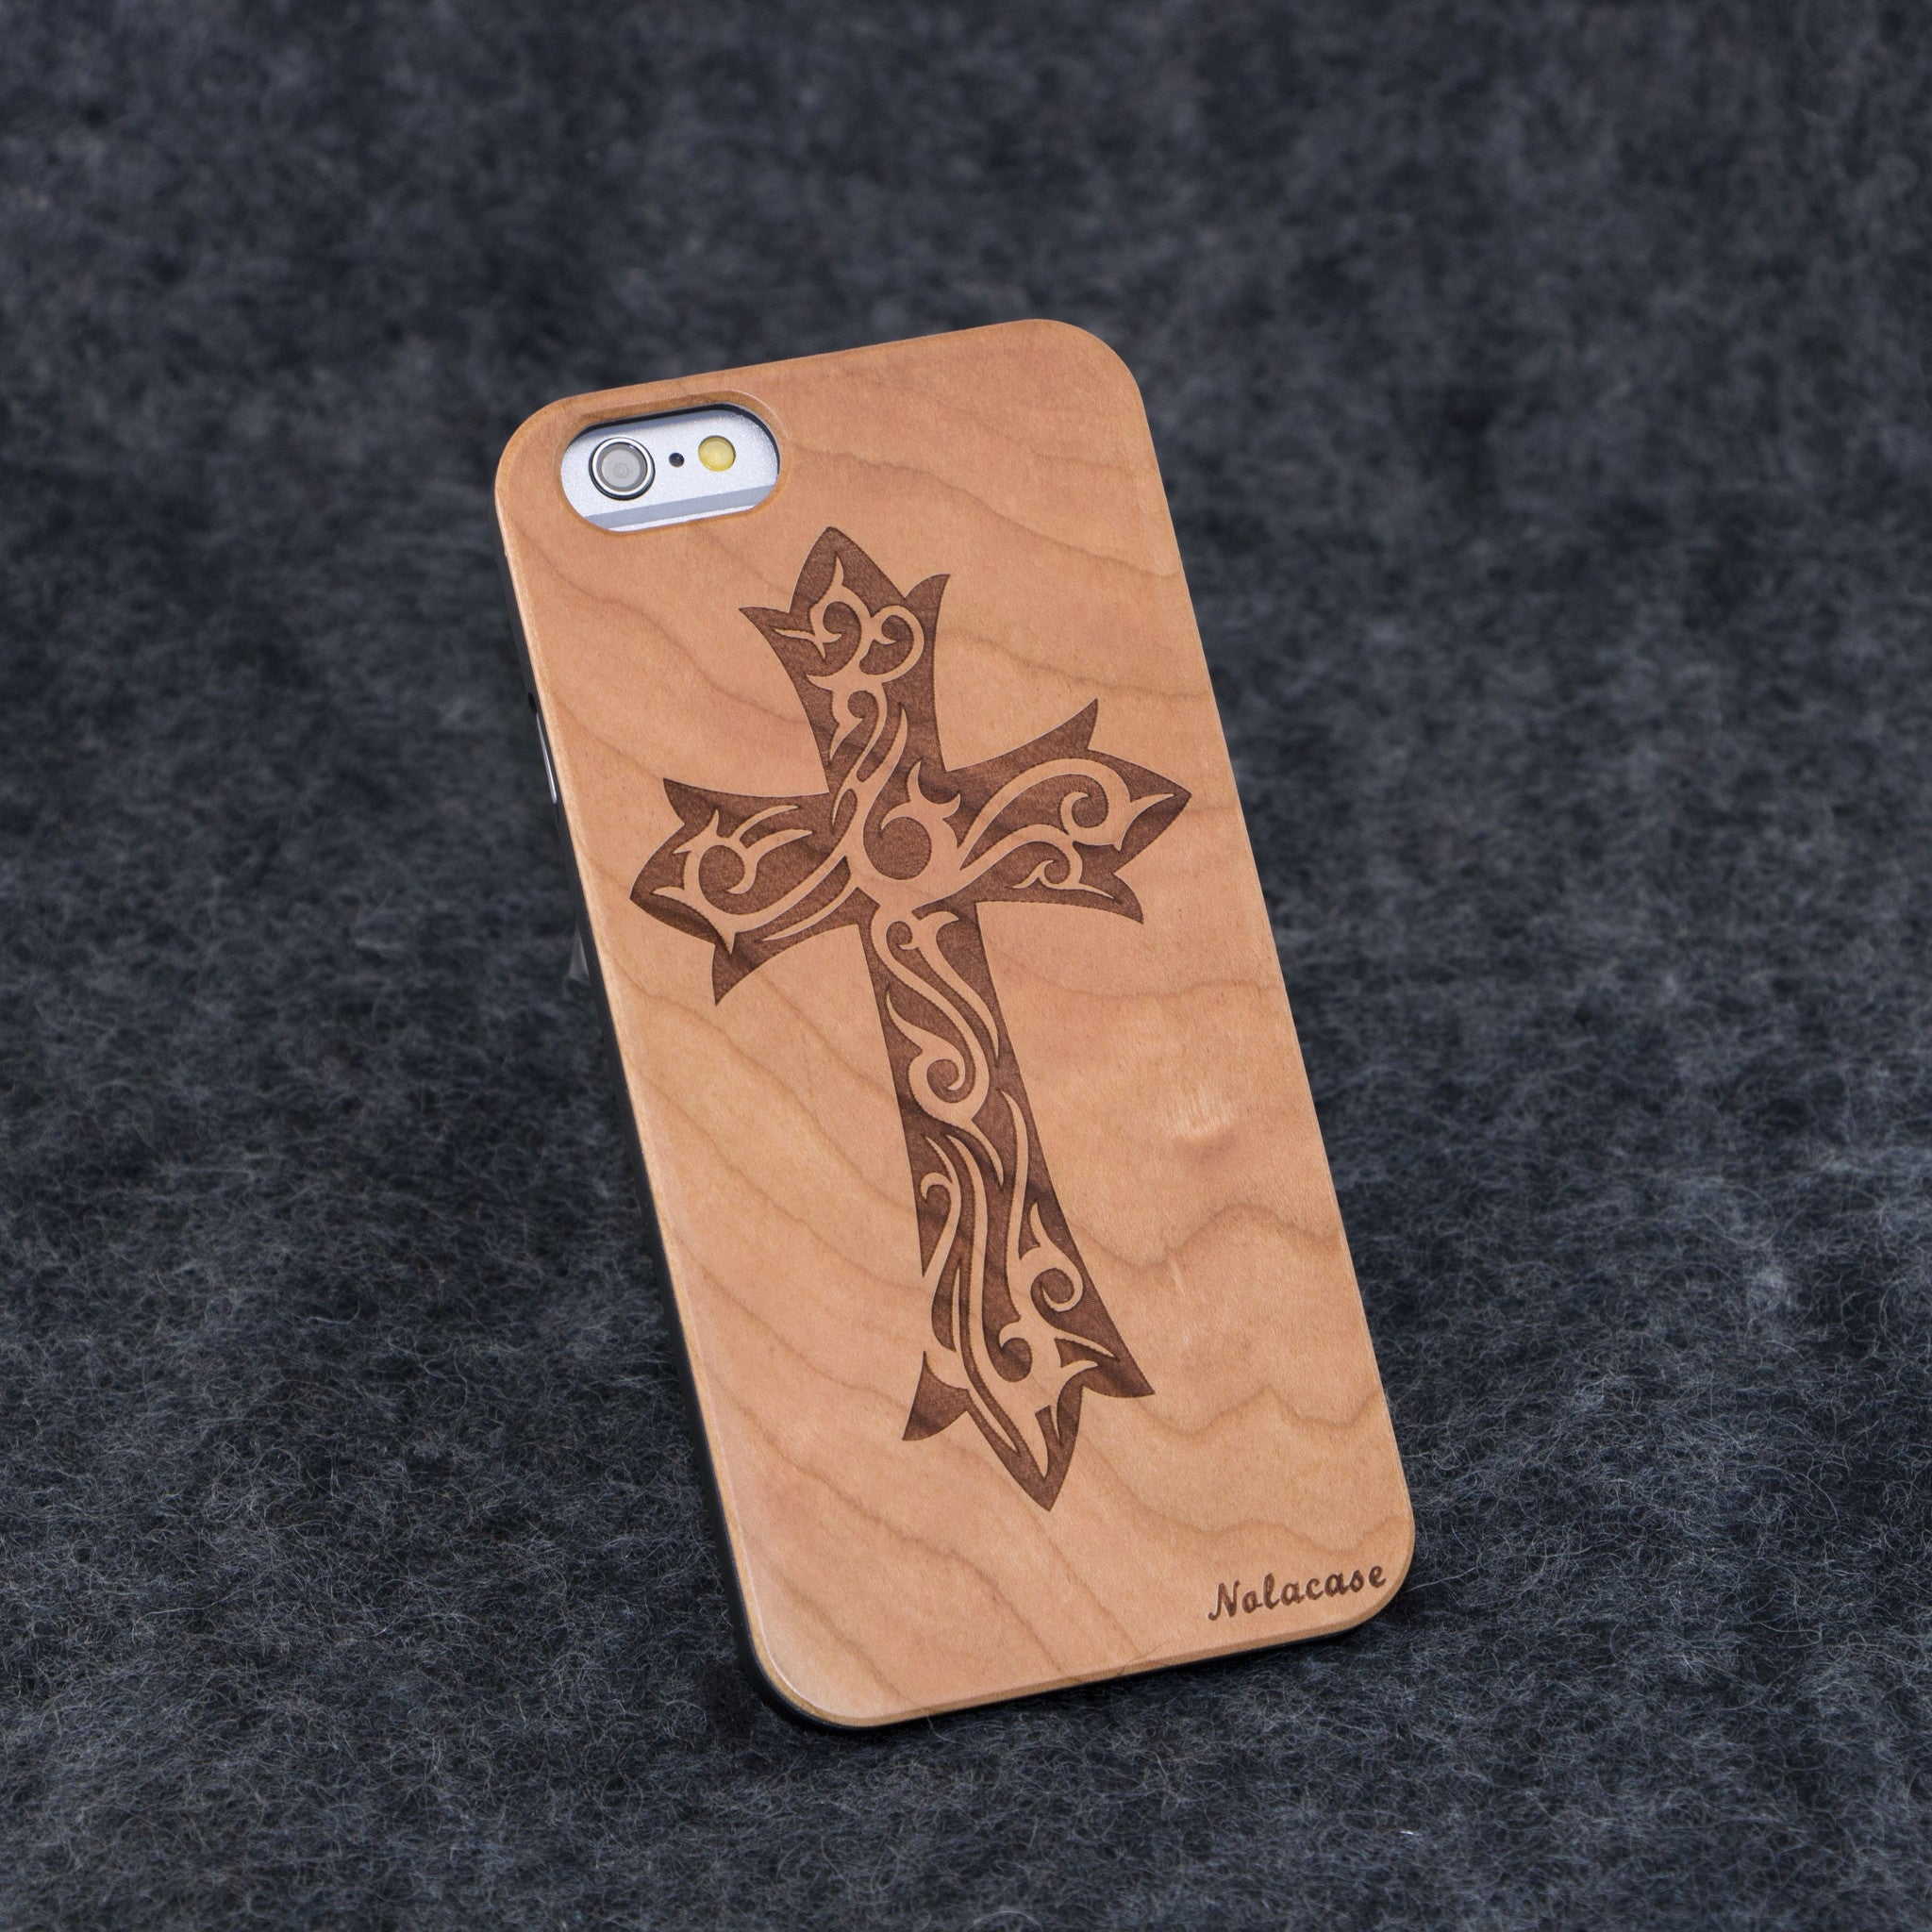 iPhone 6 / 6S Floral Cross Slim Wood Case - NOLACASE